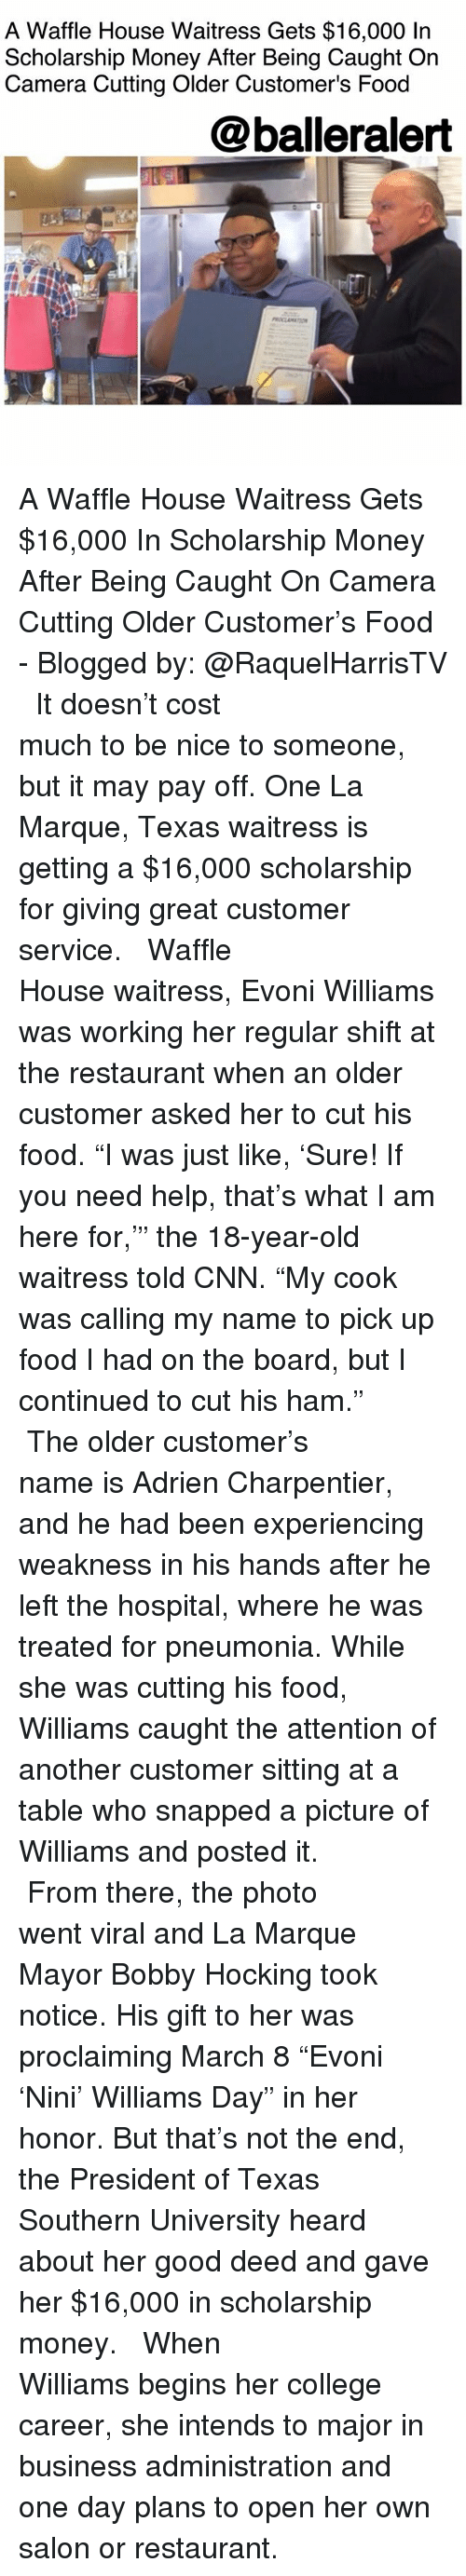 """Waffle House: A Waffle House Waitress Gets $16,000 In  Scholarship Money After Being Caught On  Camera Cutting Older Customer's Food  @balleralert A Waffle House Waitress Gets $16,000 In Scholarship Money After Being Caught On Camera Cutting Older Customer's Food - Blogged by: @RaquelHarrisTV ⠀⠀⠀⠀⠀⠀⠀⠀⠀ ⠀⠀⠀⠀⠀⠀⠀⠀⠀ It doesn't cost much to be nice to someone, but it may pay off. One La Marque, Texas waitress is getting a $16,000 scholarship for giving great customer service. ⠀⠀⠀⠀⠀⠀⠀⠀⠀ ⠀⠀⠀⠀⠀⠀⠀⠀⠀ Waffle House waitress, Evoni Williams was working her regular shift at the restaurant when an older customer asked her to cut his food. """"I was just like, 'Sure! If you need help, that's what I am here for,'"""" the 18-year-old waitress told CNN. """"My cook was calling my name to pick up food I had on the board, but I continued to cut his ham."""" ⠀⠀⠀⠀⠀⠀⠀⠀⠀ ⠀⠀⠀⠀⠀⠀⠀⠀⠀ The older customer's name is Adrien Charpentier, and he had been experiencing weakness in his hands after he left the hospital, where he was treated for pneumonia. While she was cutting his food, Williams caught the attention of another customer sitting at a table who snapped a picture of Williams and posted it. ⠀⠀⠀⠀⠀⠀⠀⠀⠀ ⠀⠀⠀⠀⠀⠀⠀⠀⠀ From there, the photo went viral and La Marque Mayor Bobby Hocking took notice. His gift to her was proclaiming March 8 """"Evoni 'Nini' Williams Day"""" in her honor. But that's not the end, the President of Texas Southern University heard about her good deed and gave her $16,000 in scholarship money. ⠀⠀⠀⠀⠀⠀⠀⠀⠀ ⠀⠀⠀⠀⠀⠀⠀⠀⠀ When Williams begins her college career, she intends to major in business administration and one day plans to open her own salon or restaurant."""